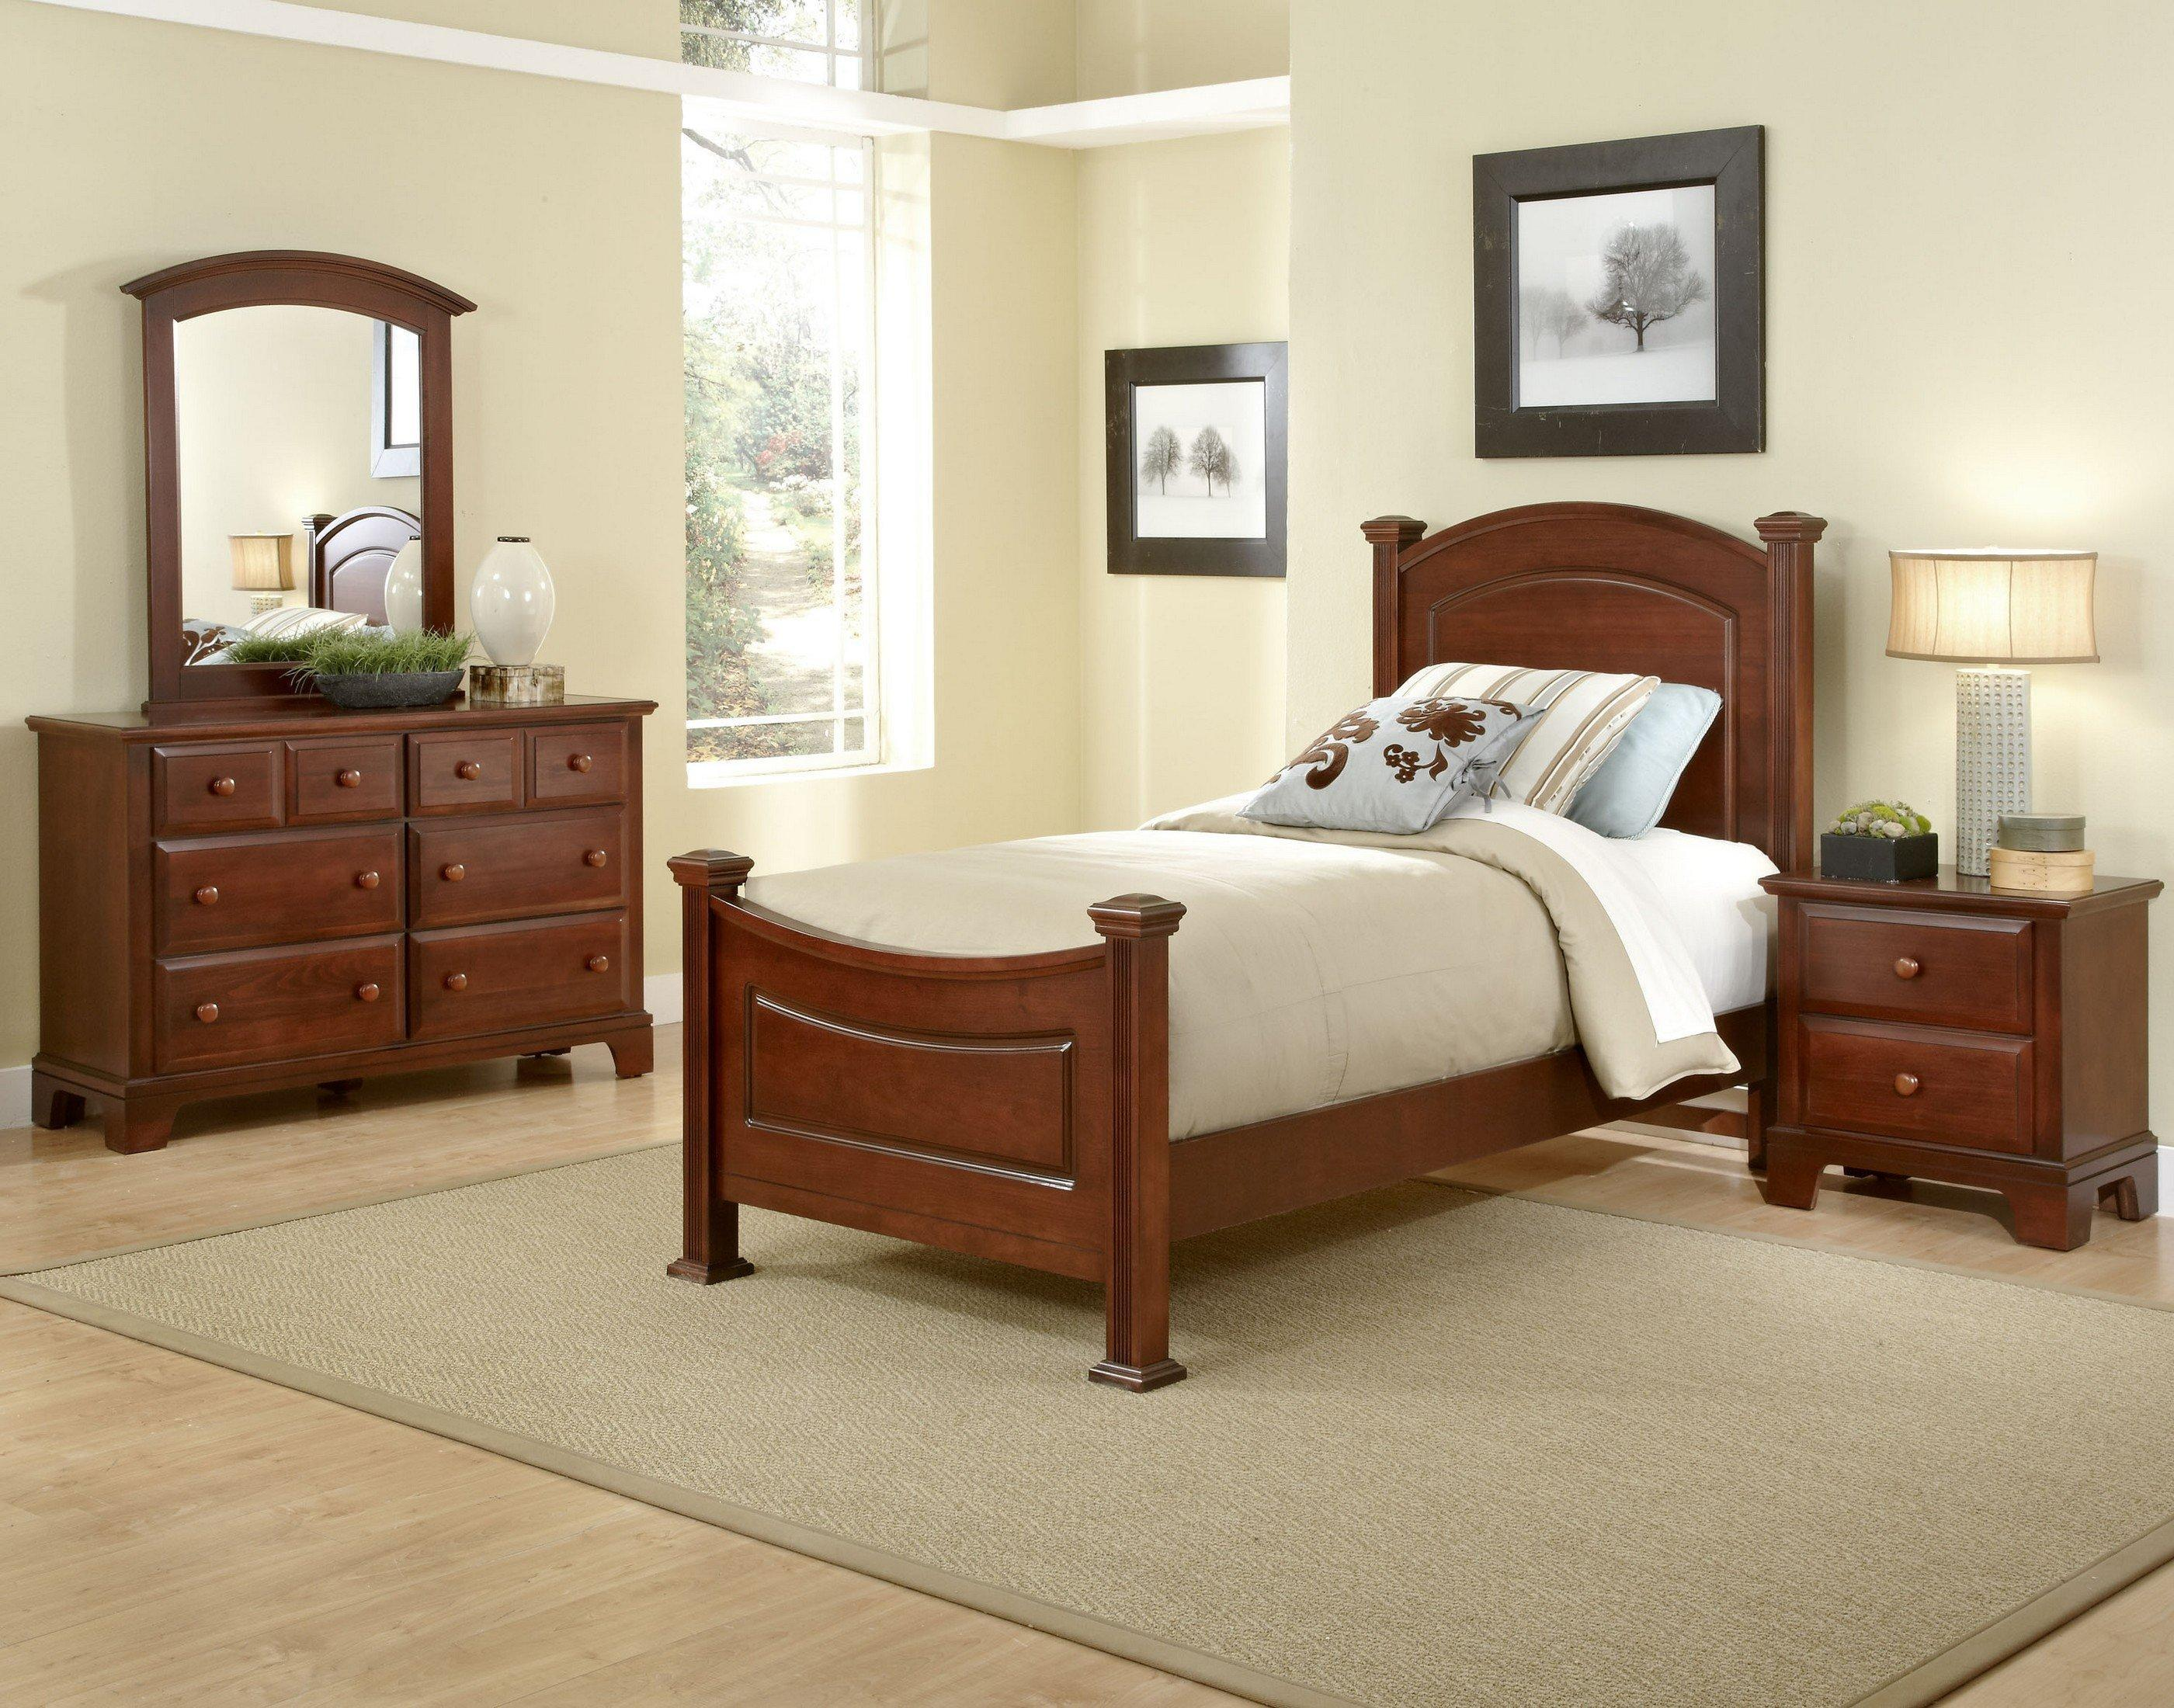 Vaughan Bassett Hamilton Franklin Twin Bedroom Group - Item Number: BB5 T Bedroom Group 1